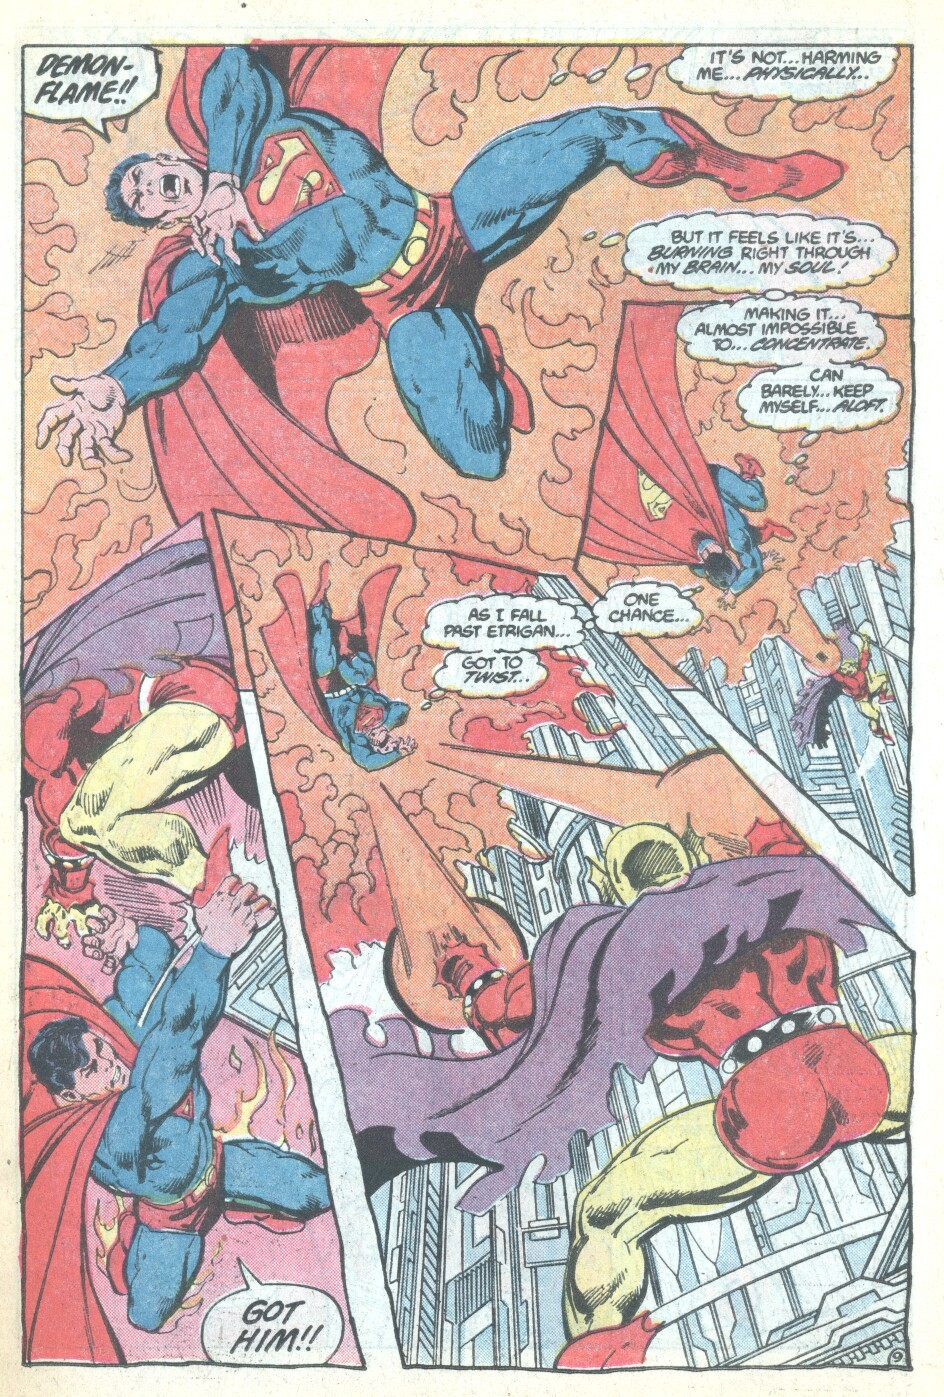 Here he uses his hell fire on Superman